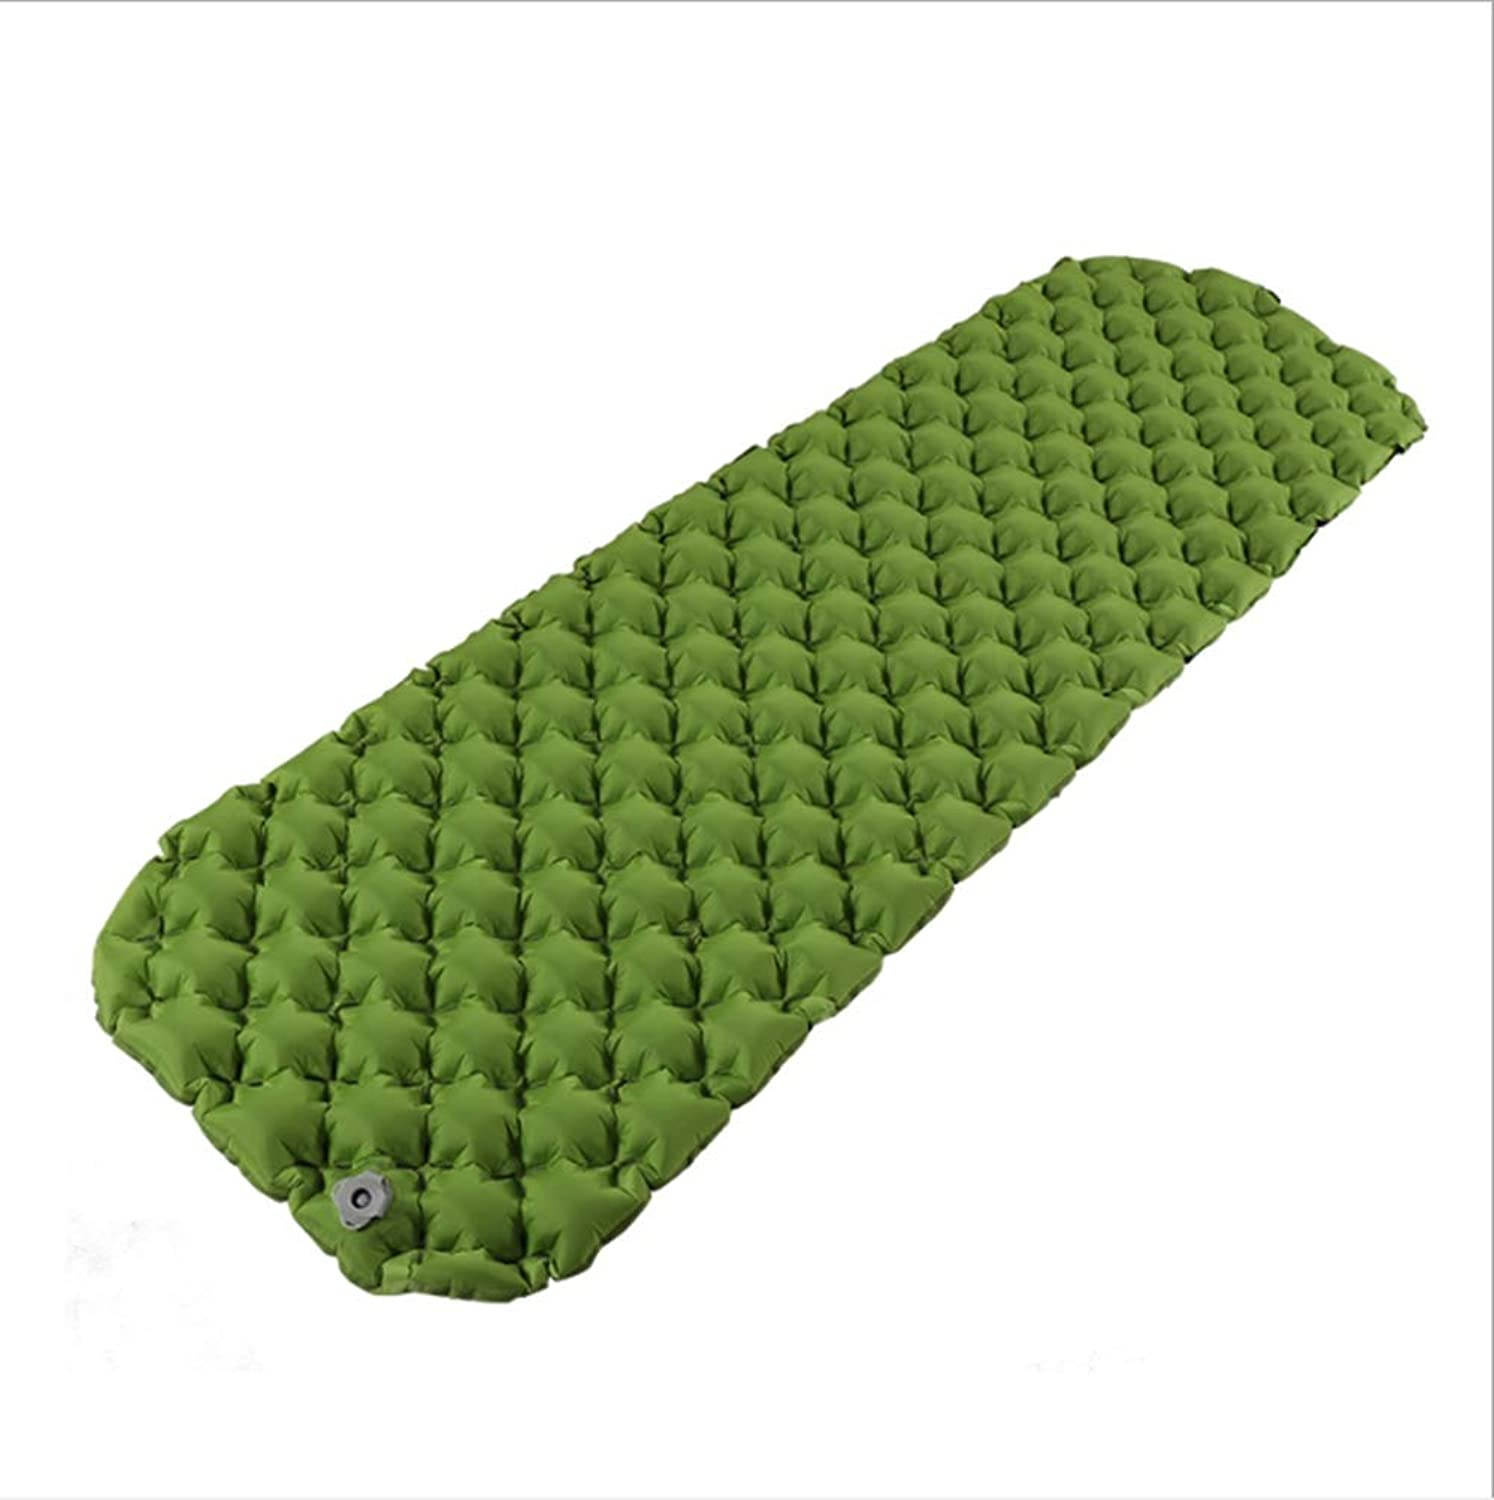 Folding Inflatable Sleeping Mats, Camping Mattresses, Inflatable Rolls - Compact and Moisture-Proof for Hiking, Backpacks, Hammocks, Tent Sleeping Bags Green